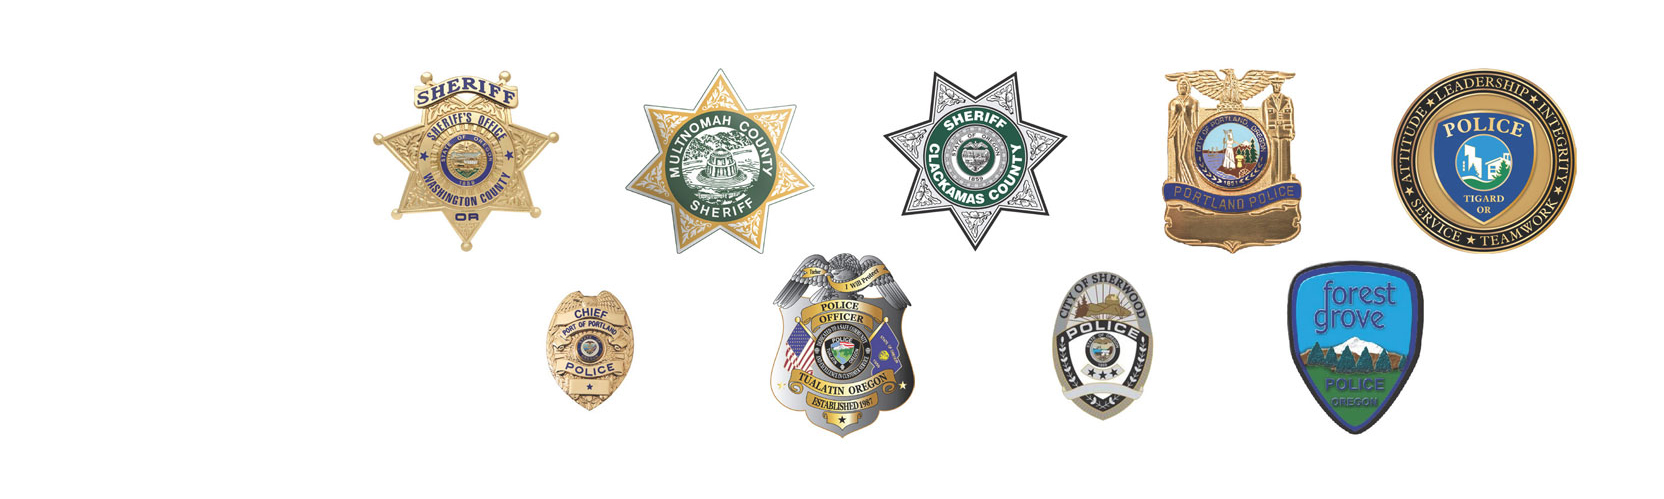 Sheriff offices' emblems